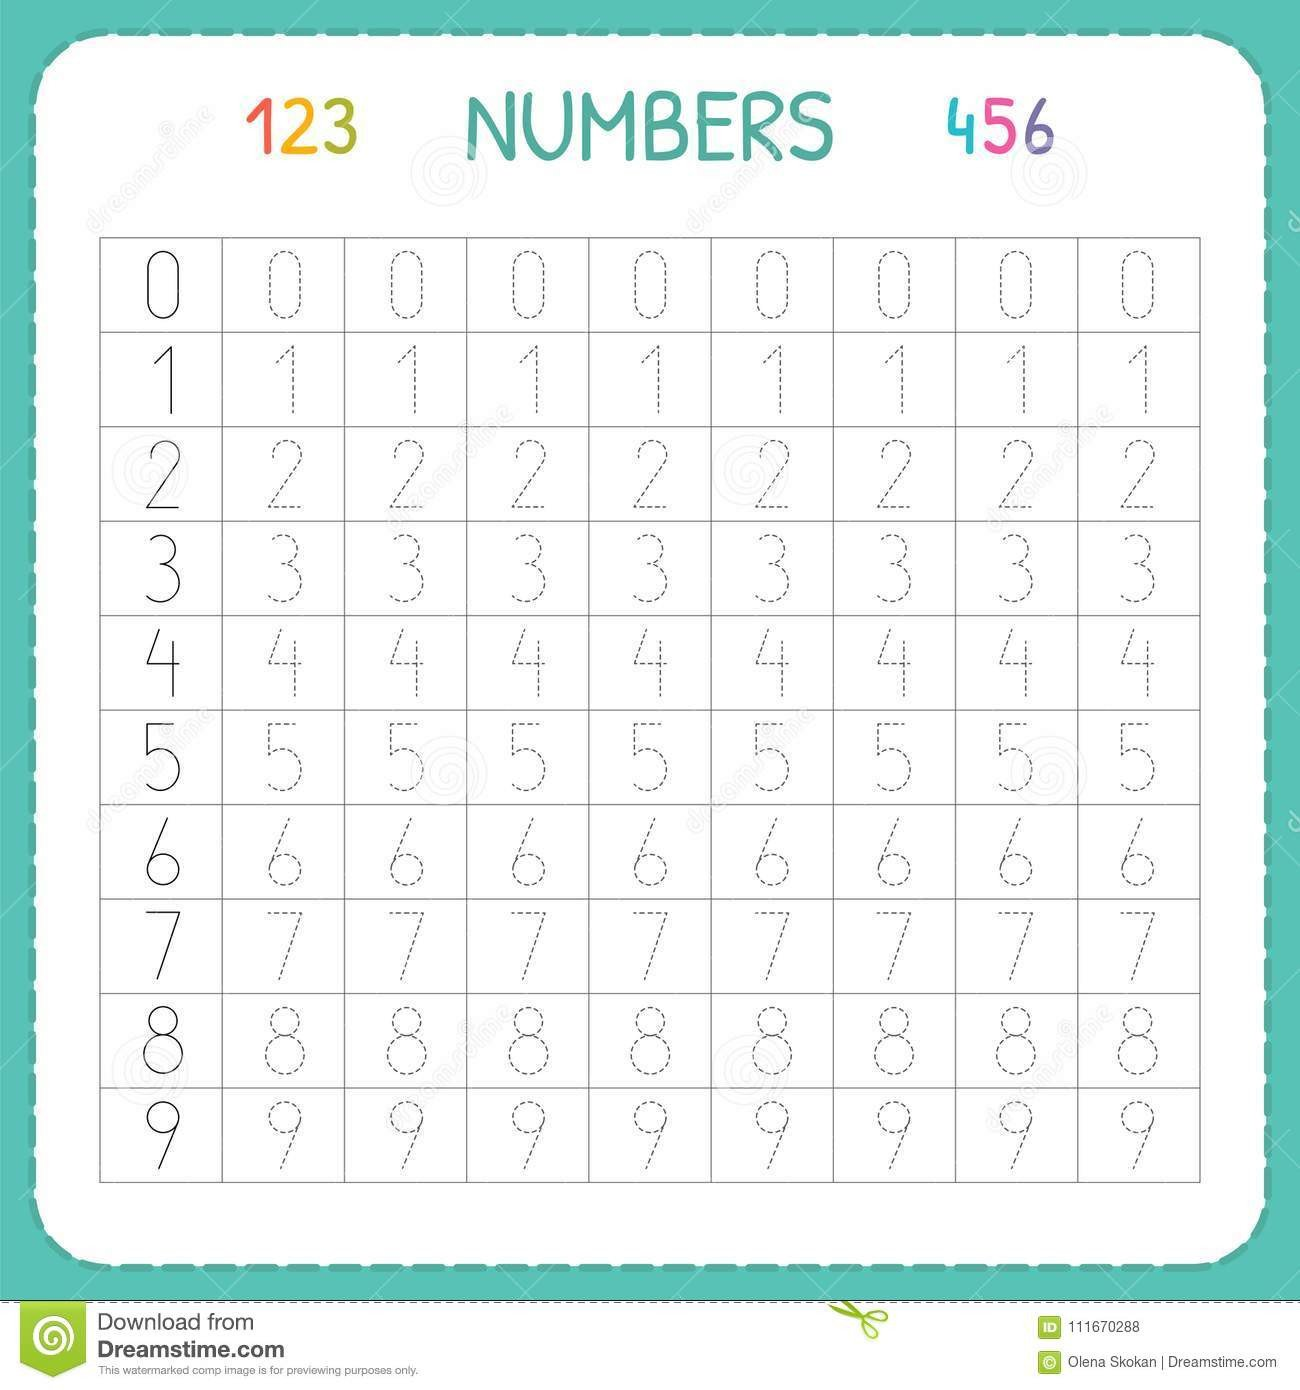 Kindergarten Number Line Worksheets Numbers for Kids Worksheet for Kindergarten and Preschool